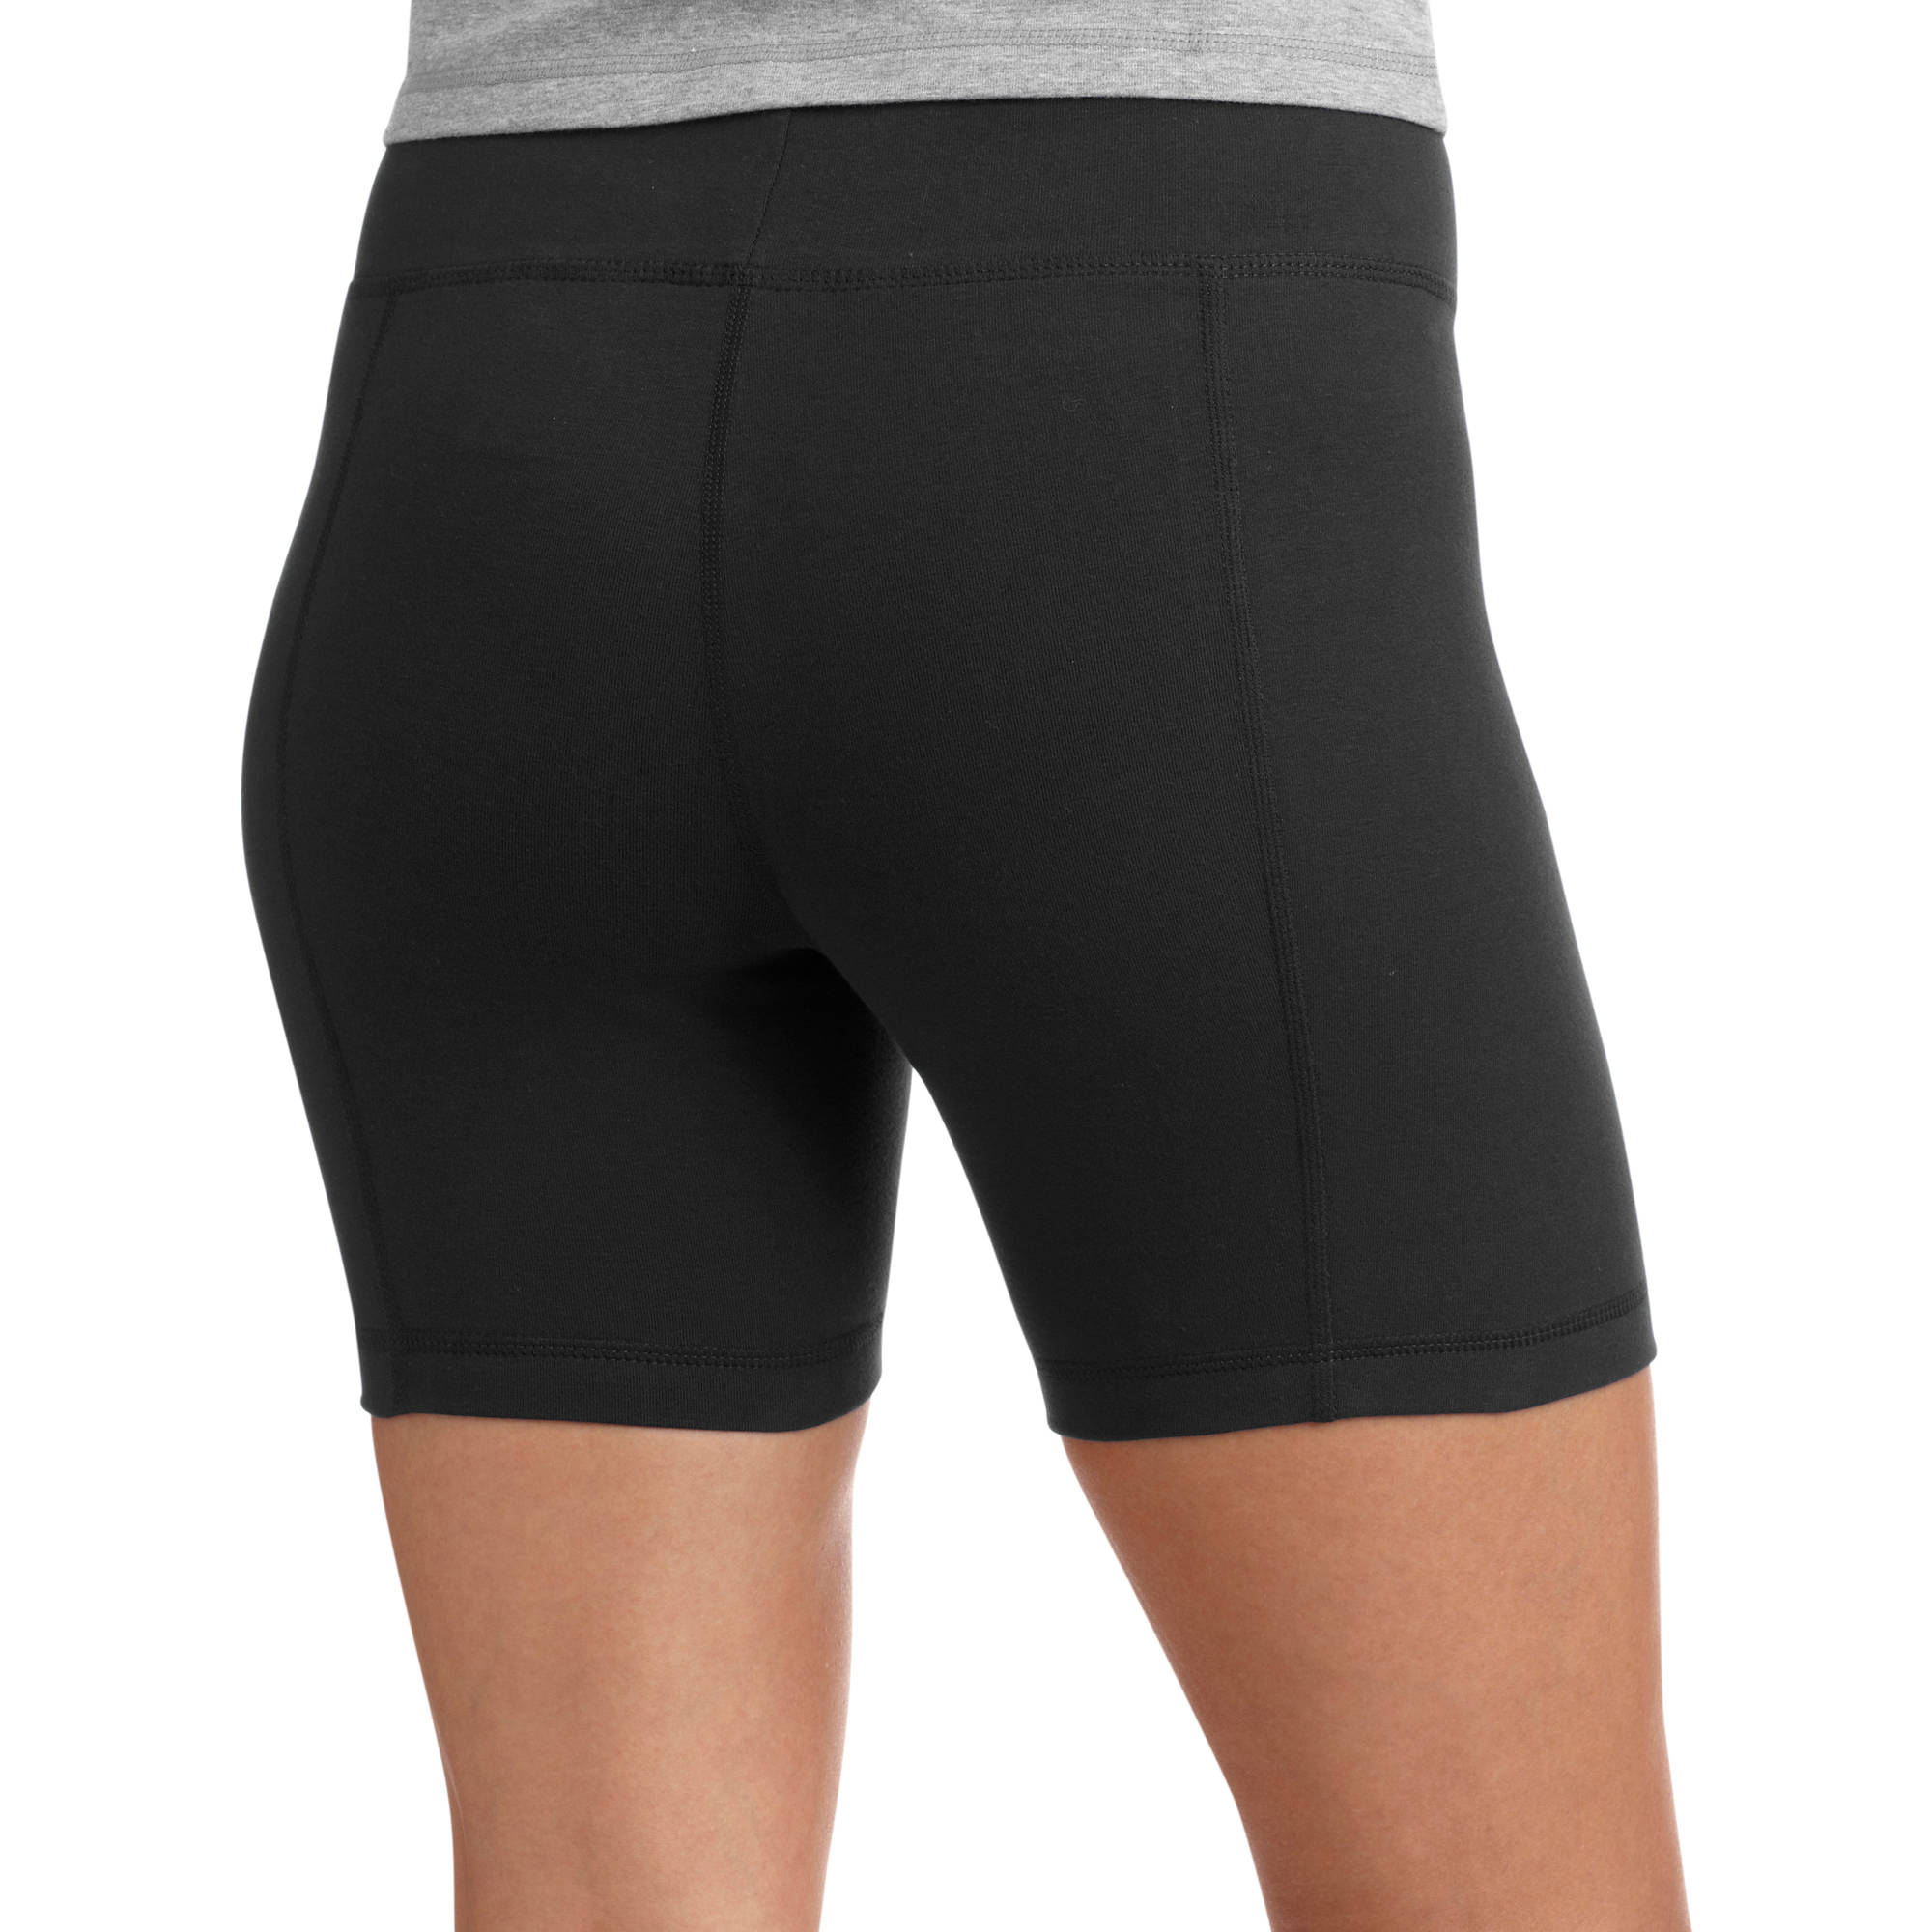 biker shorts danskin now womenu0027s dri-more core bike shorts, 2-pack image 3 of hmksmye